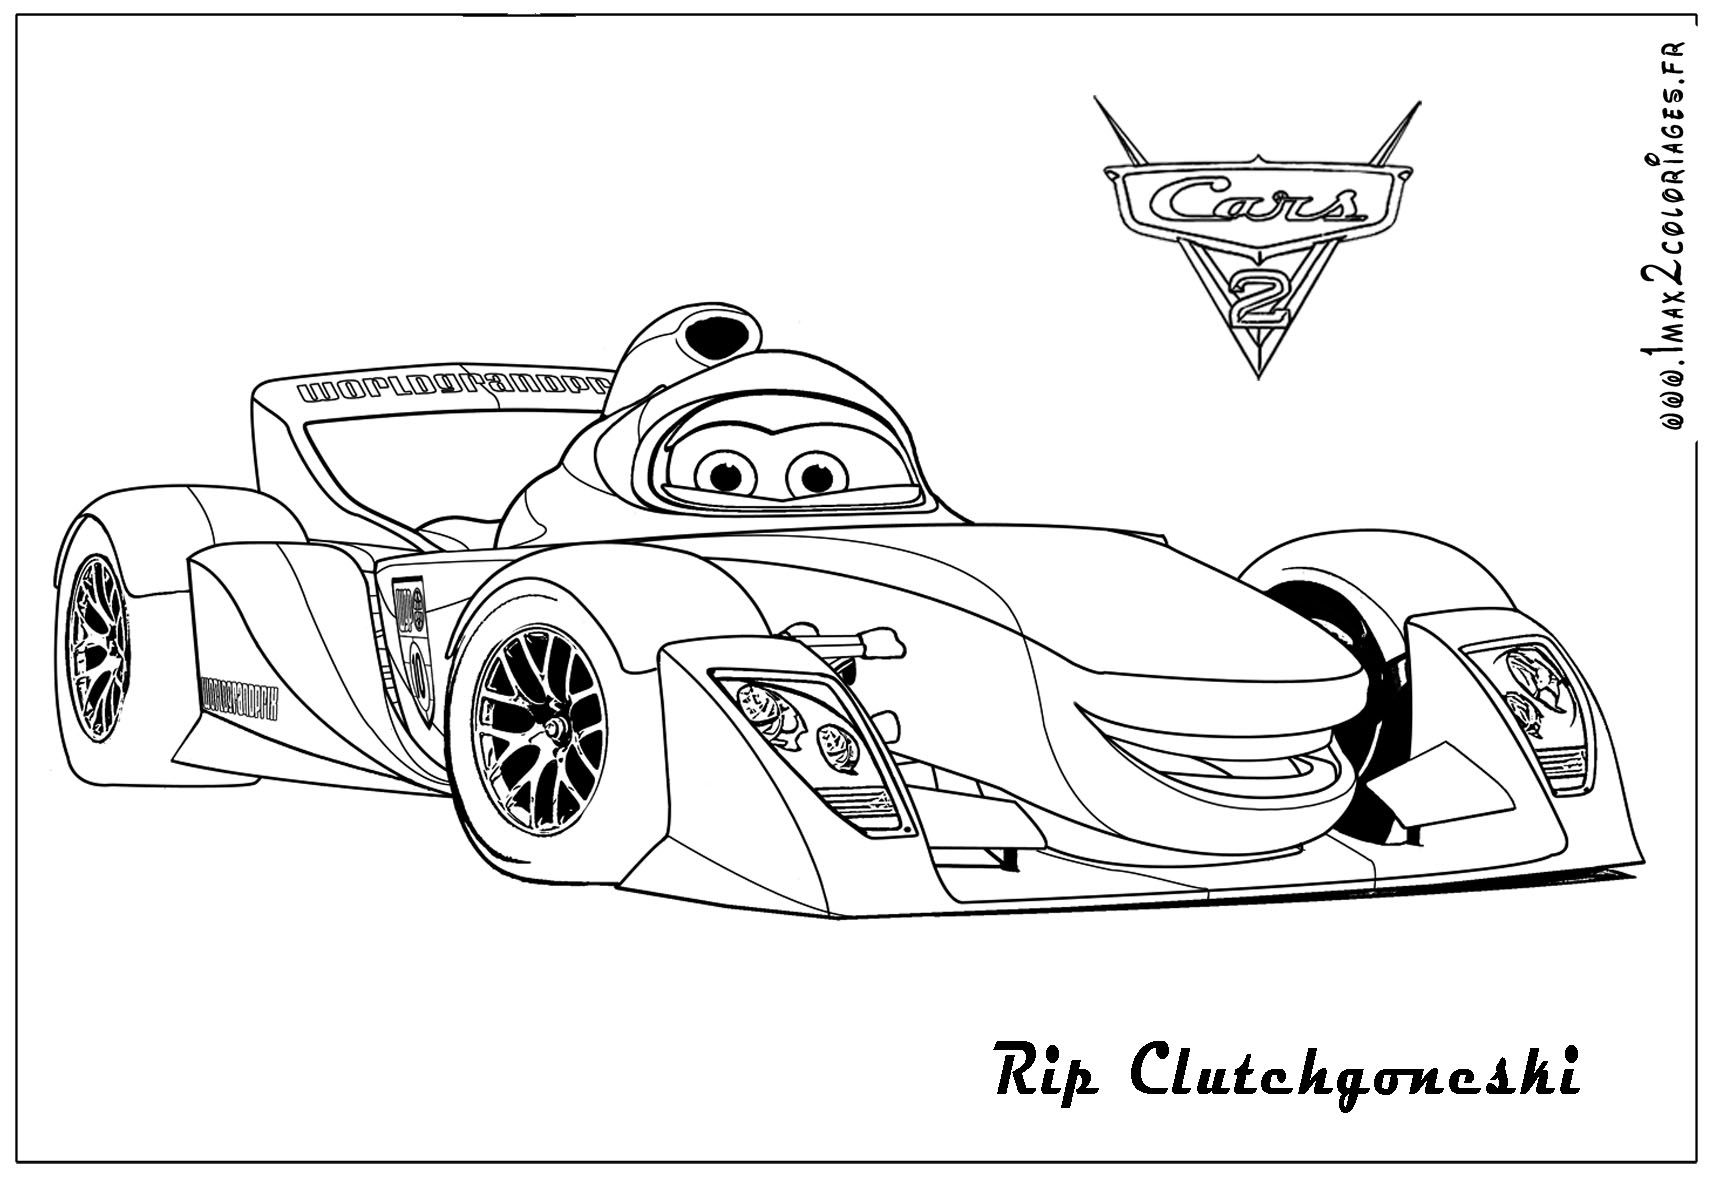 To Print Coloriages Cars2 9 Click On The Printer Icon At